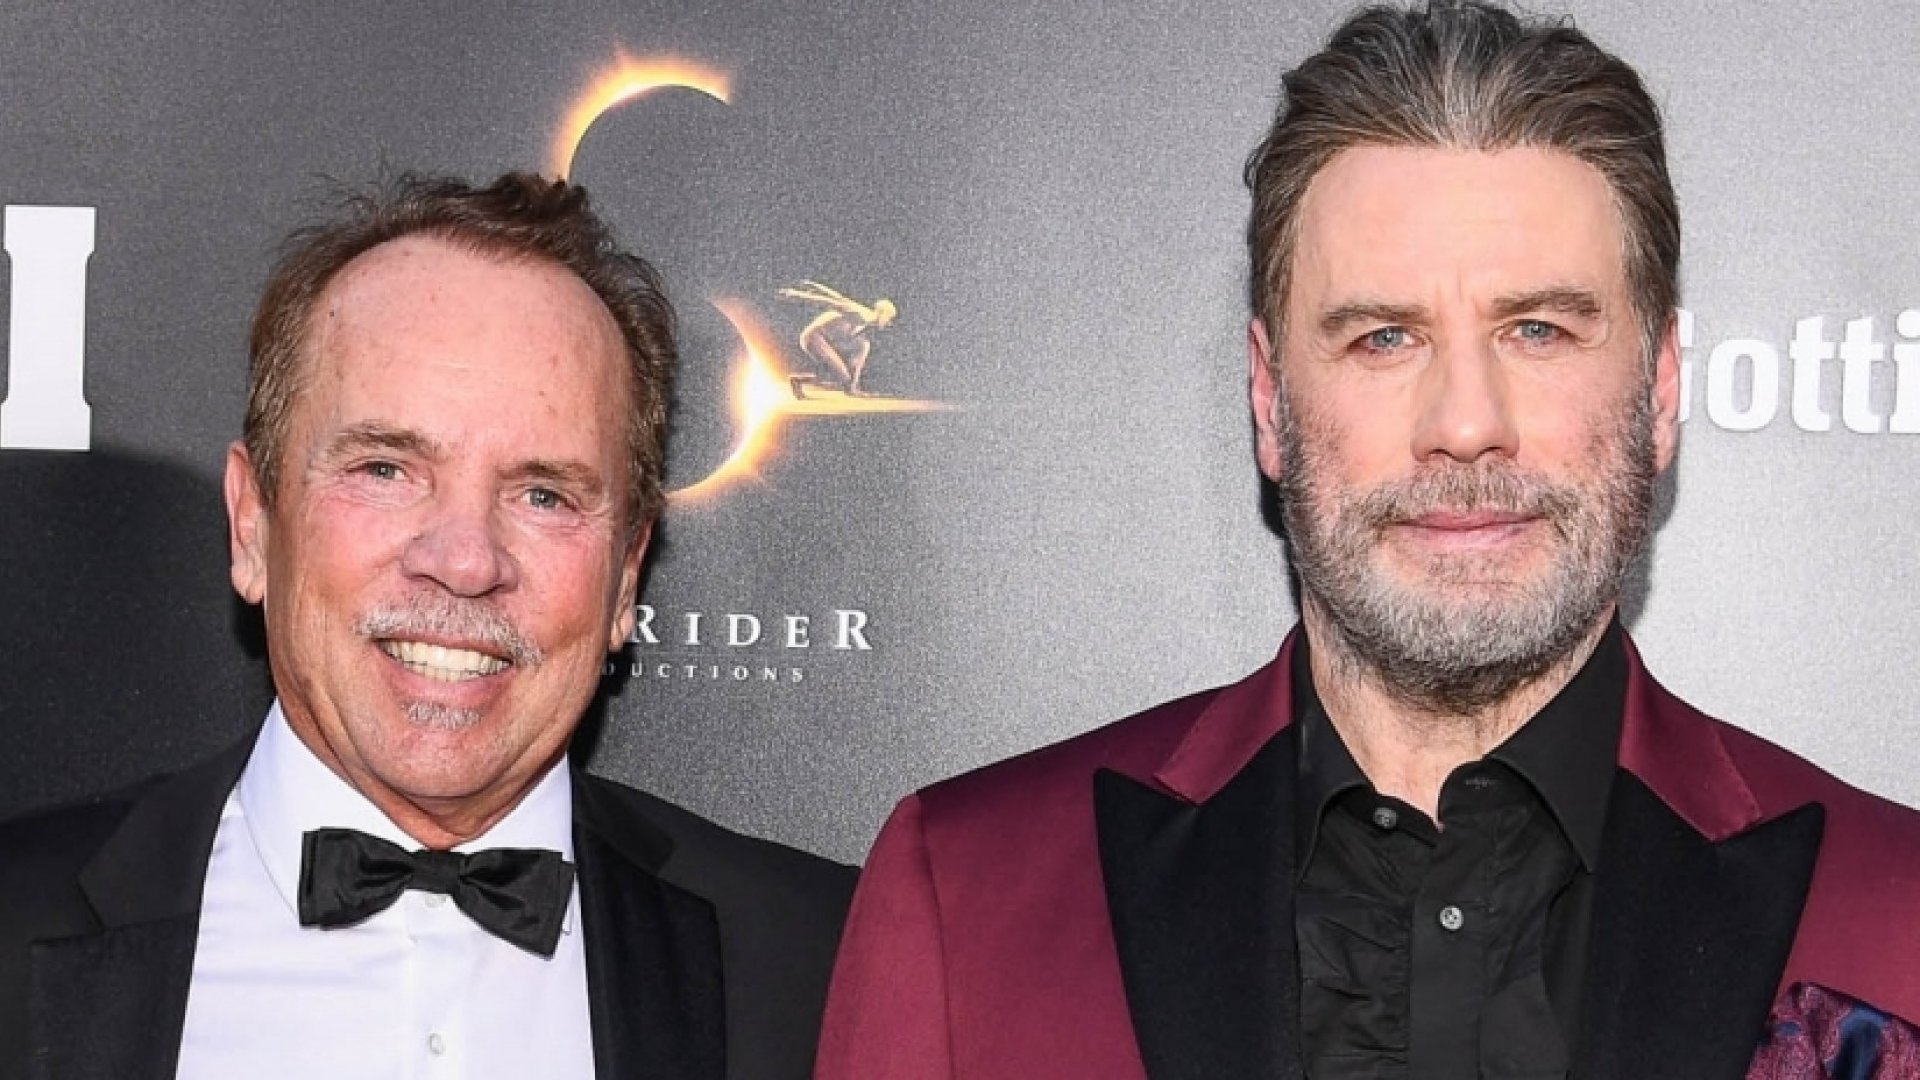 Mitch Lowe, CEO of MoviePass,  and John Travolta